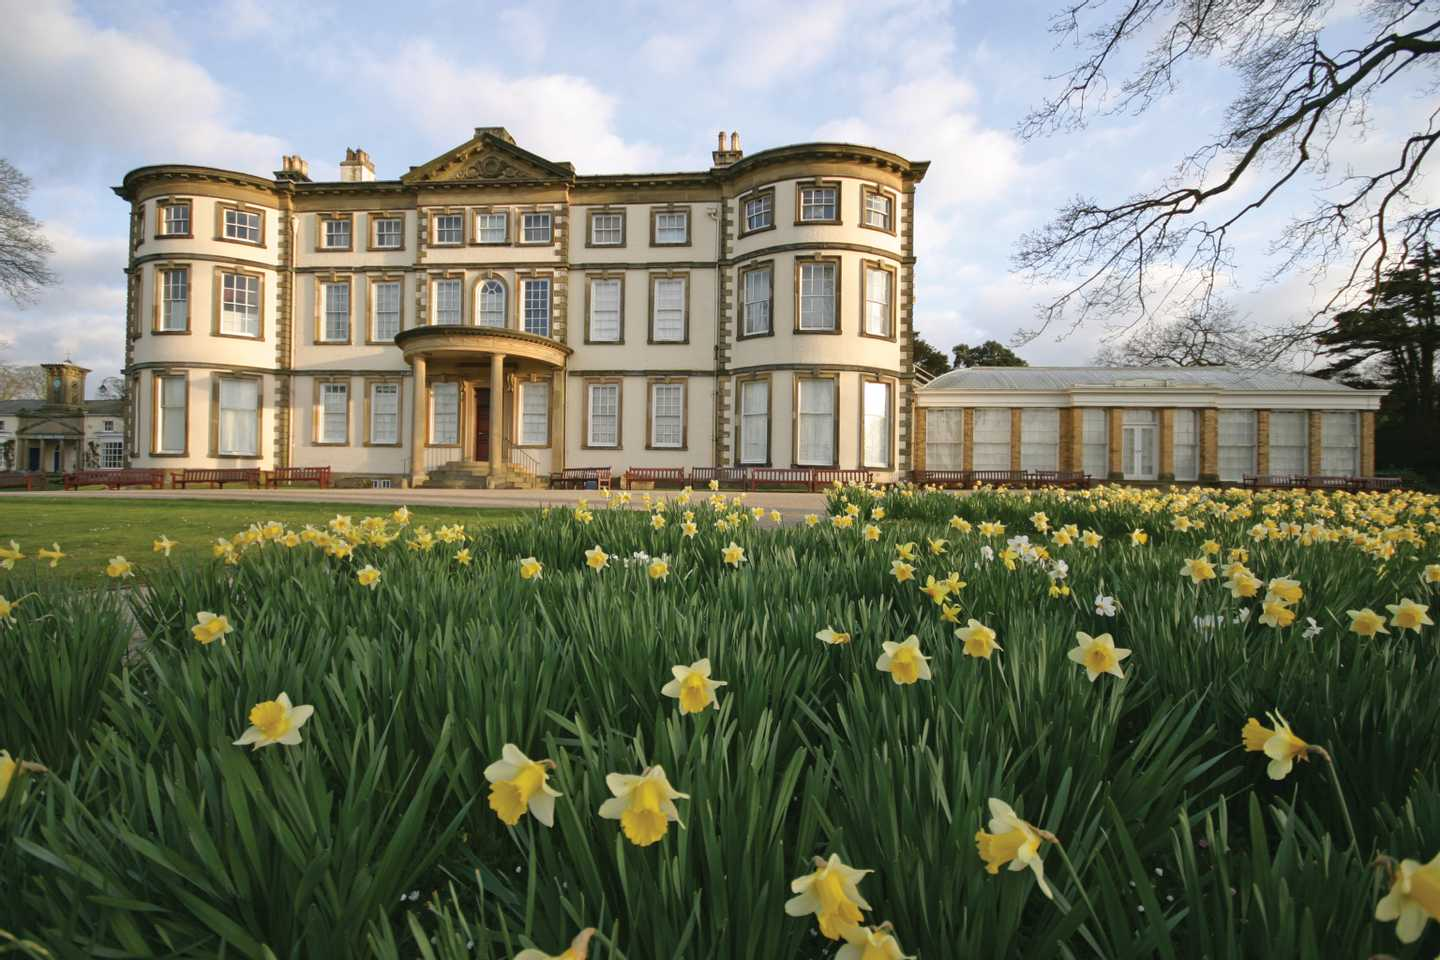 Sewerby Hall surrounded by daffodils